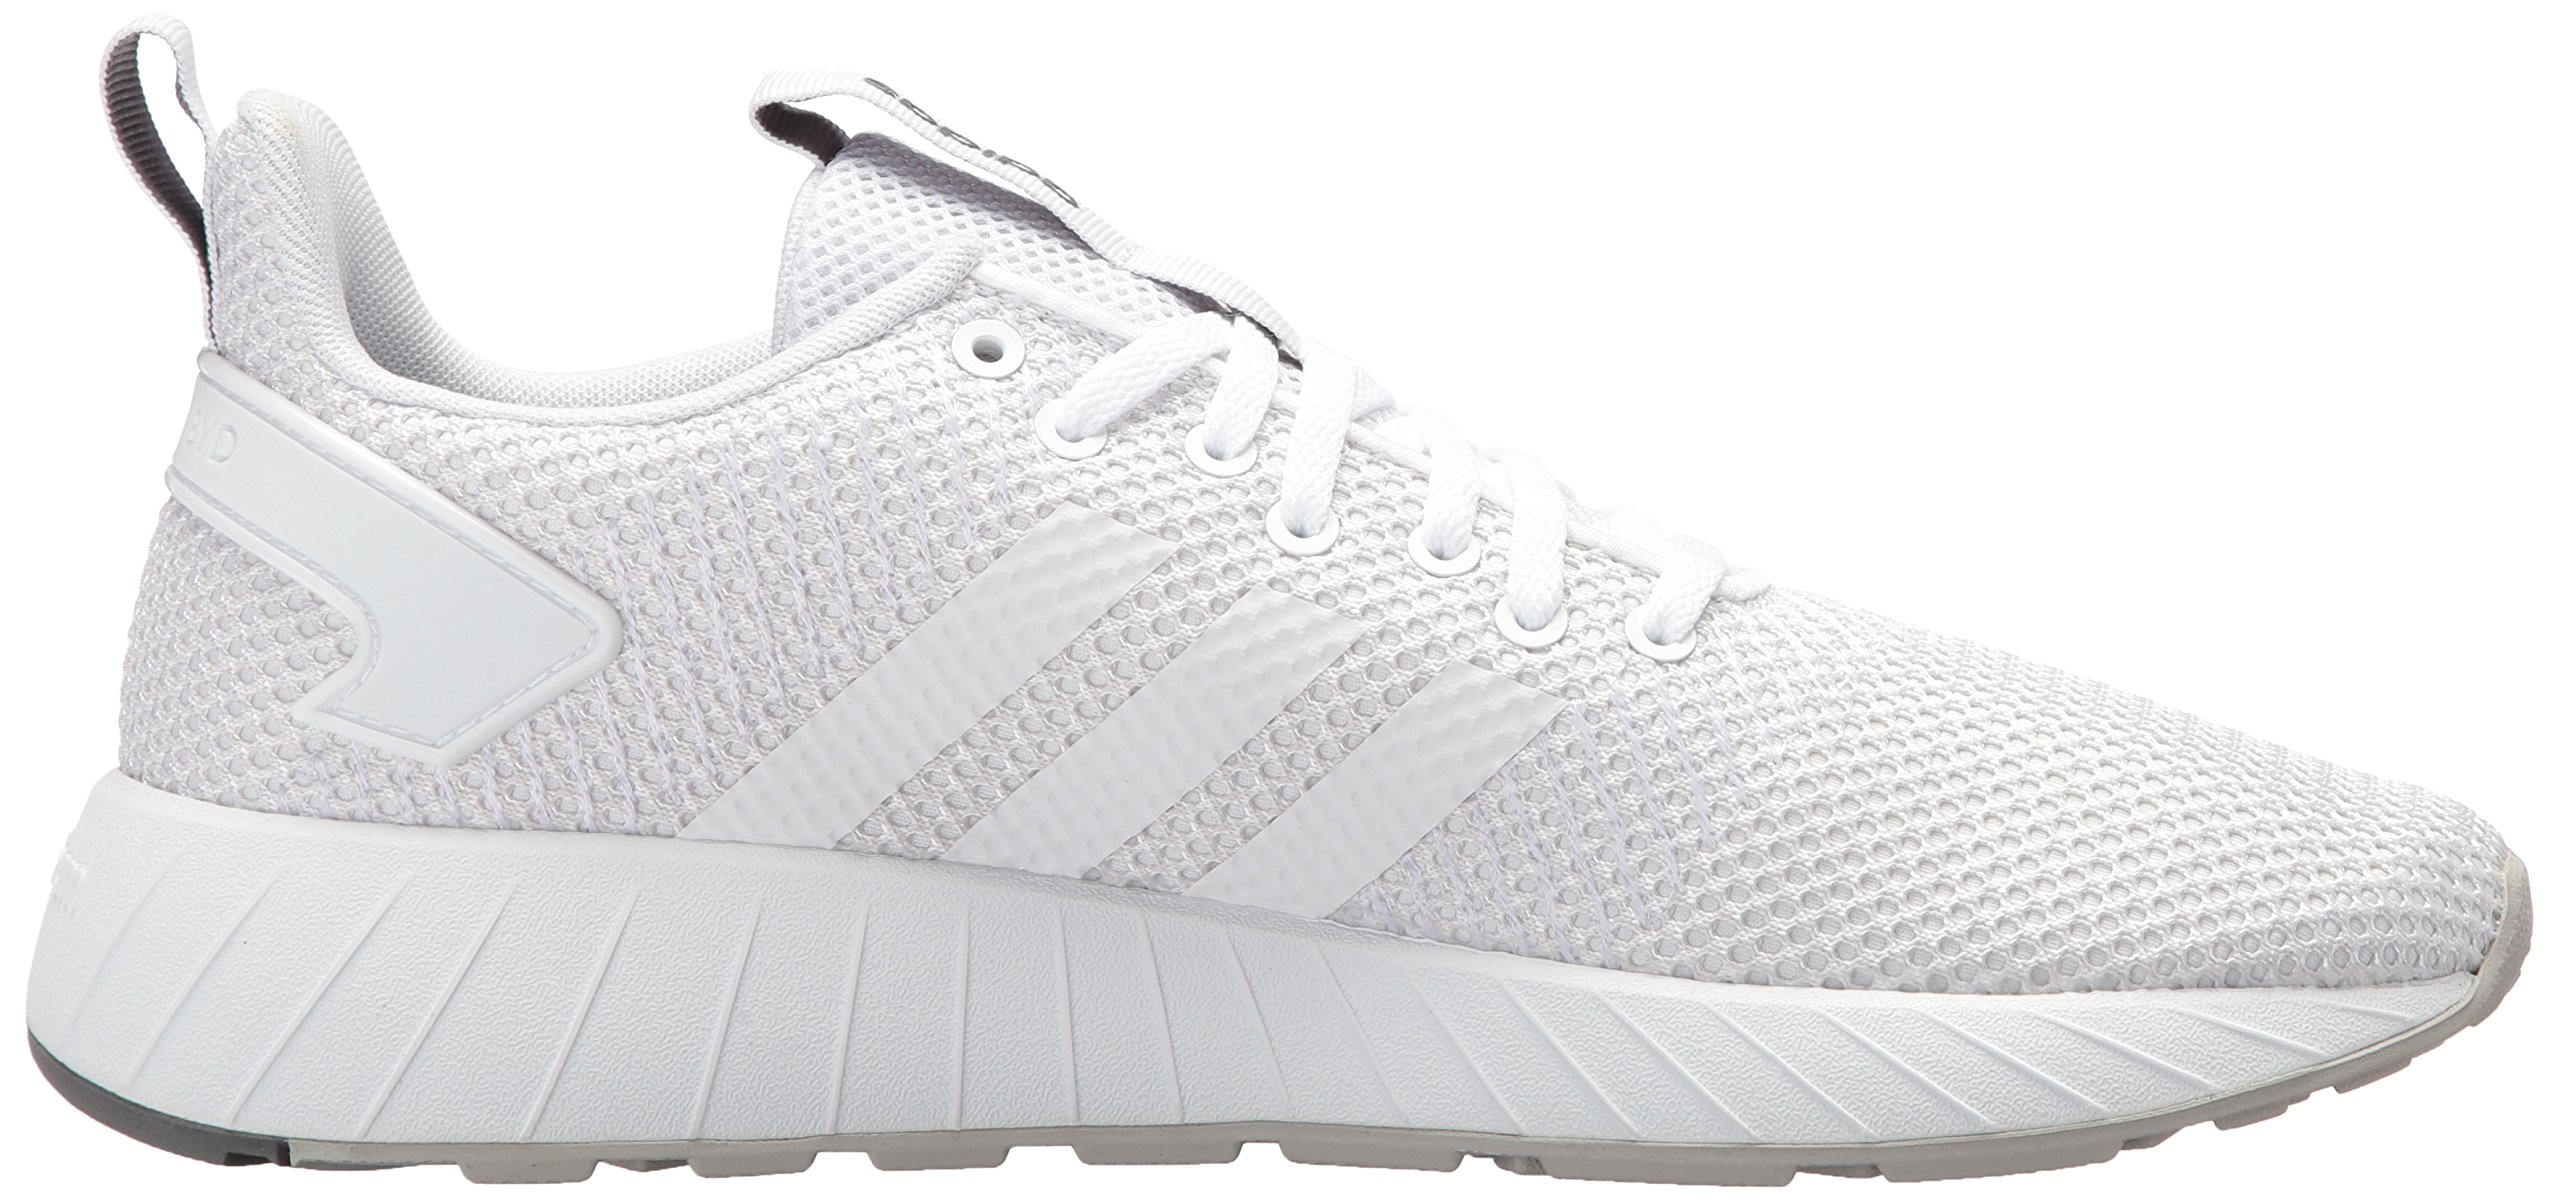 adidas Men's Questar BYD, White/Grey Two, 6.5 M US by adidas (Image #7)